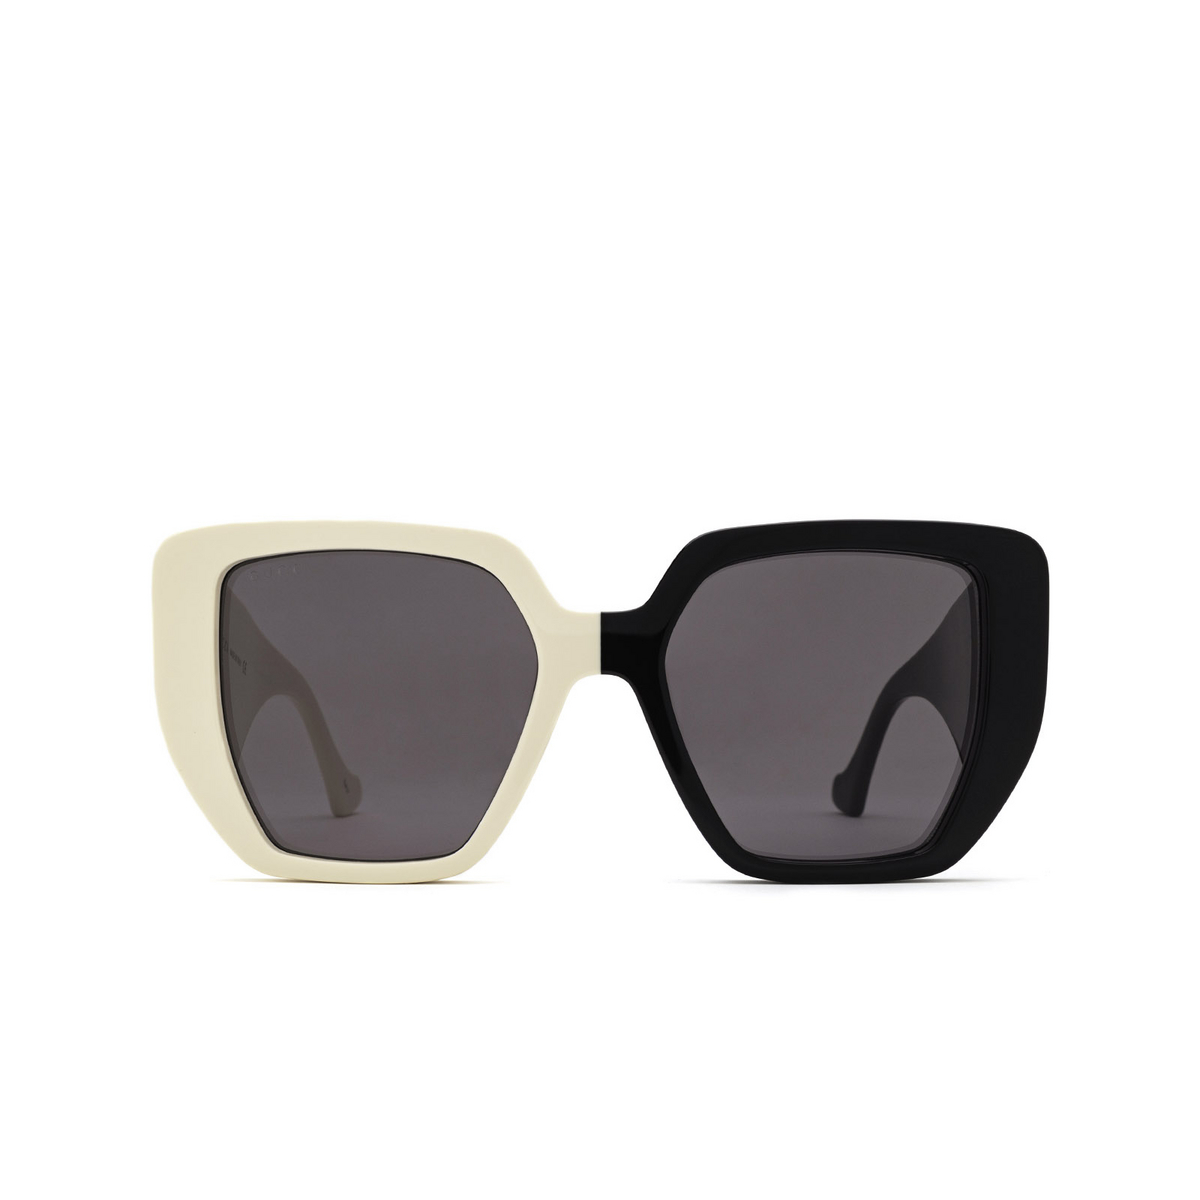 Gucci® Irregular Sunglasses: GG0956S color Black & Ivory 005 - front view.